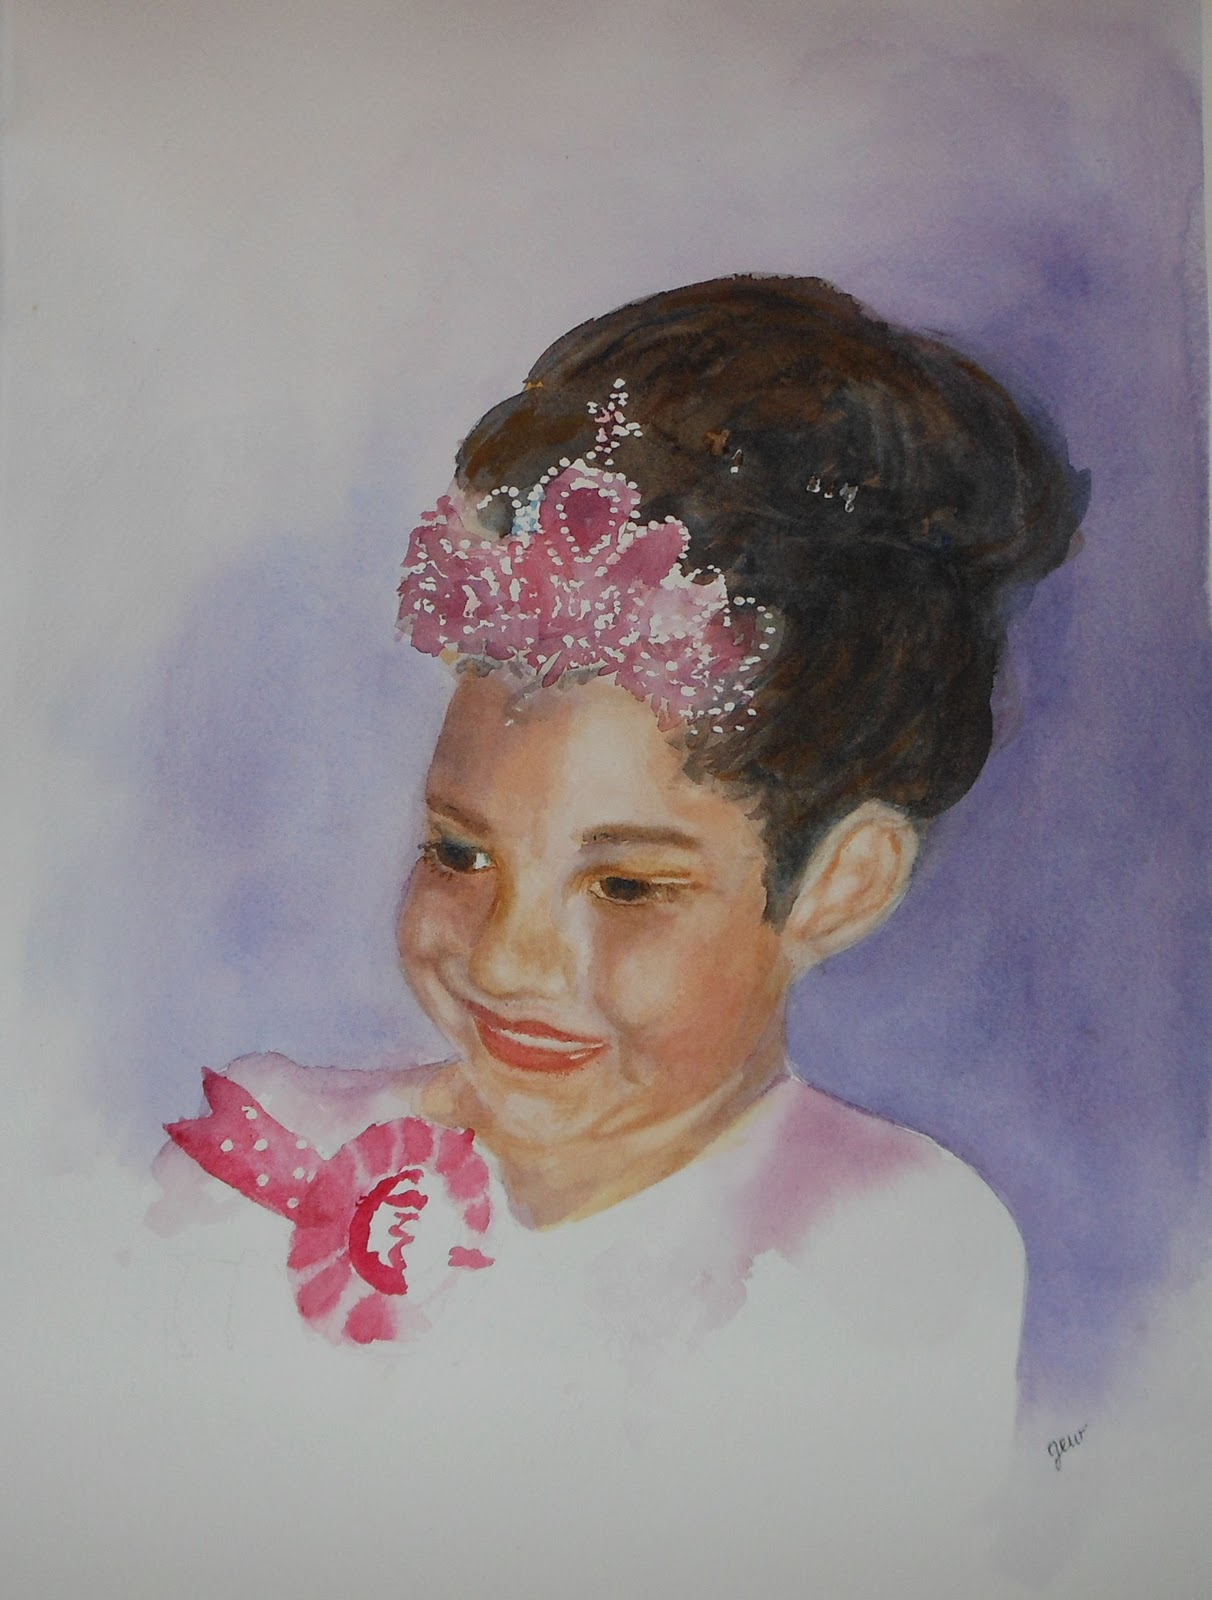 Watercolor art society of houston - I Attended Watercolor Portrait Painting Classes At The Watercolor Art Society Of Houston In Early November I Almost Completed The Portrait Of Rylee In The